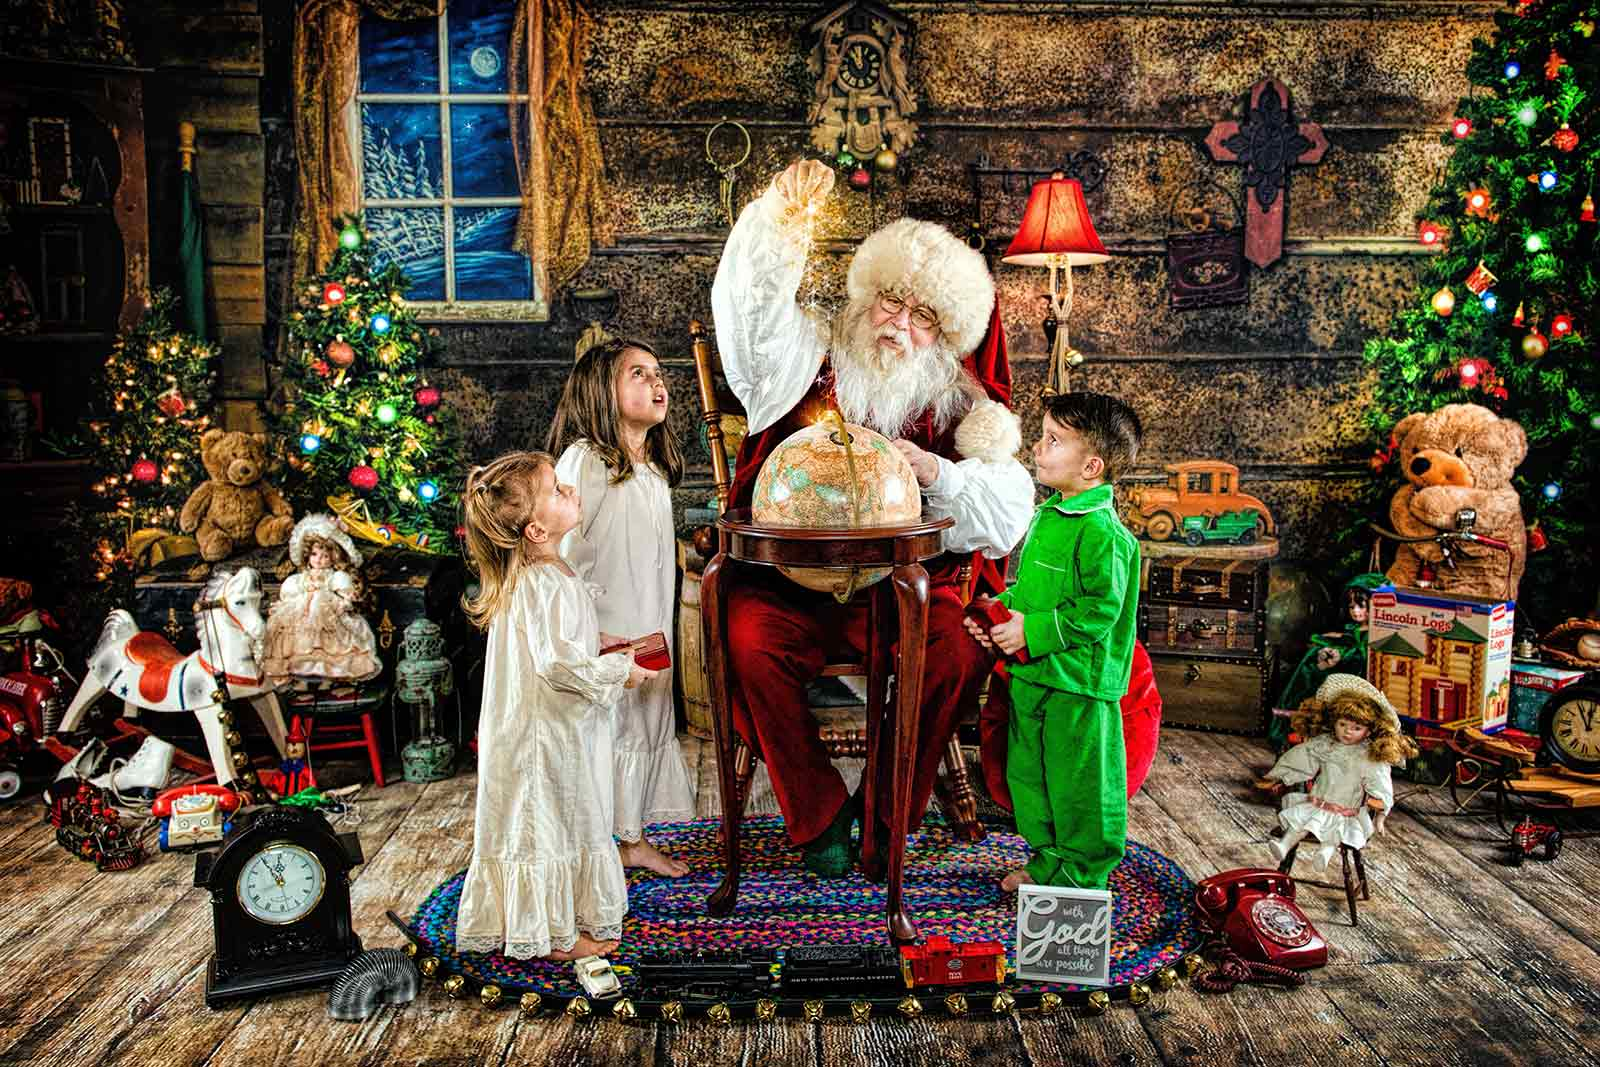 019_Magic-of-Santa-Anna-Thielen-Photography